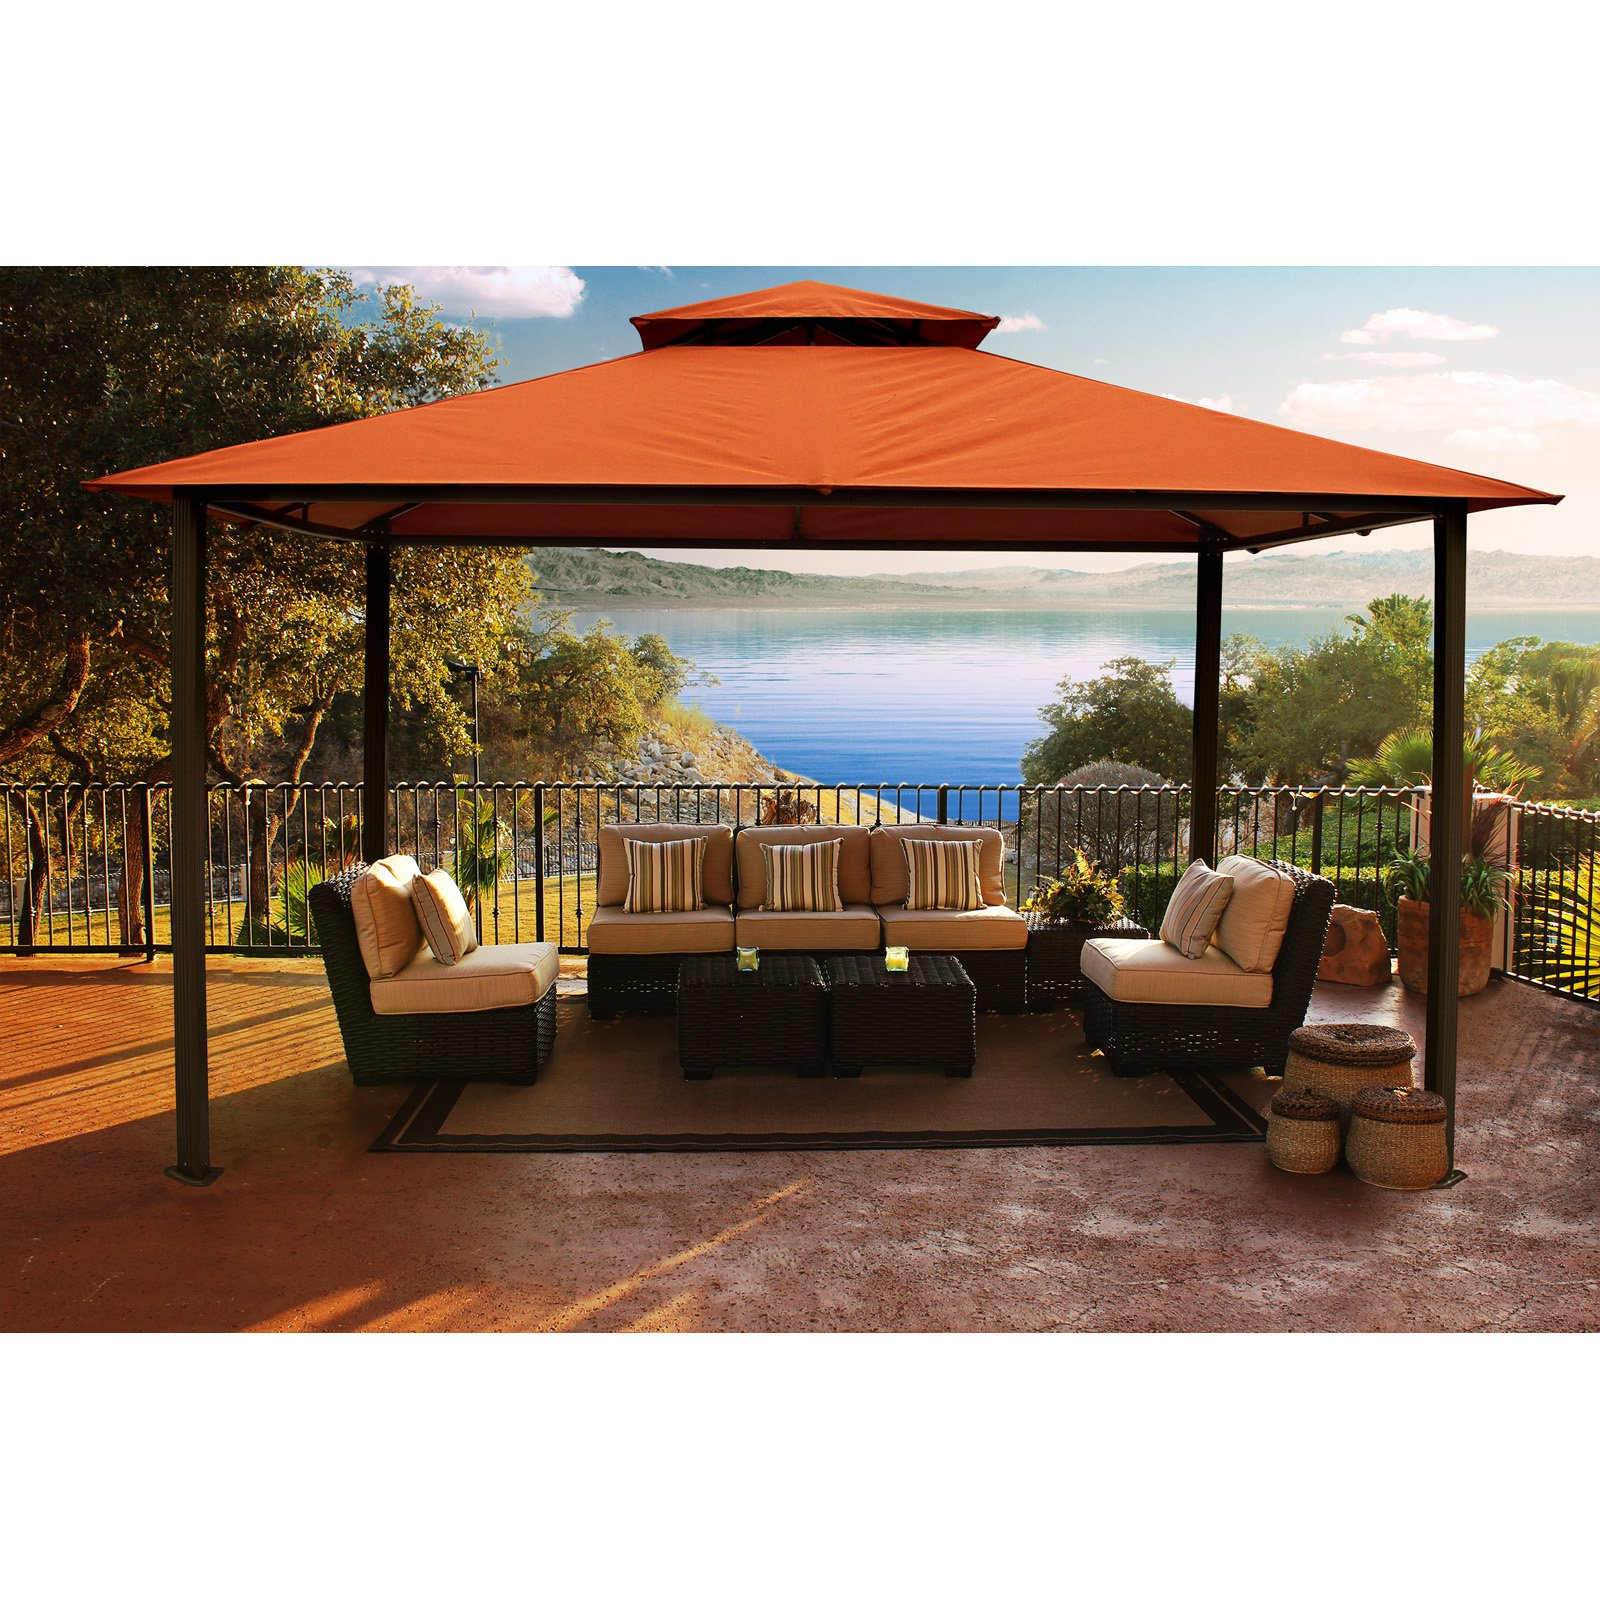 Savannah 11' x 14' Gazebo with Rust Sunbrella Top by Paragon Group USA